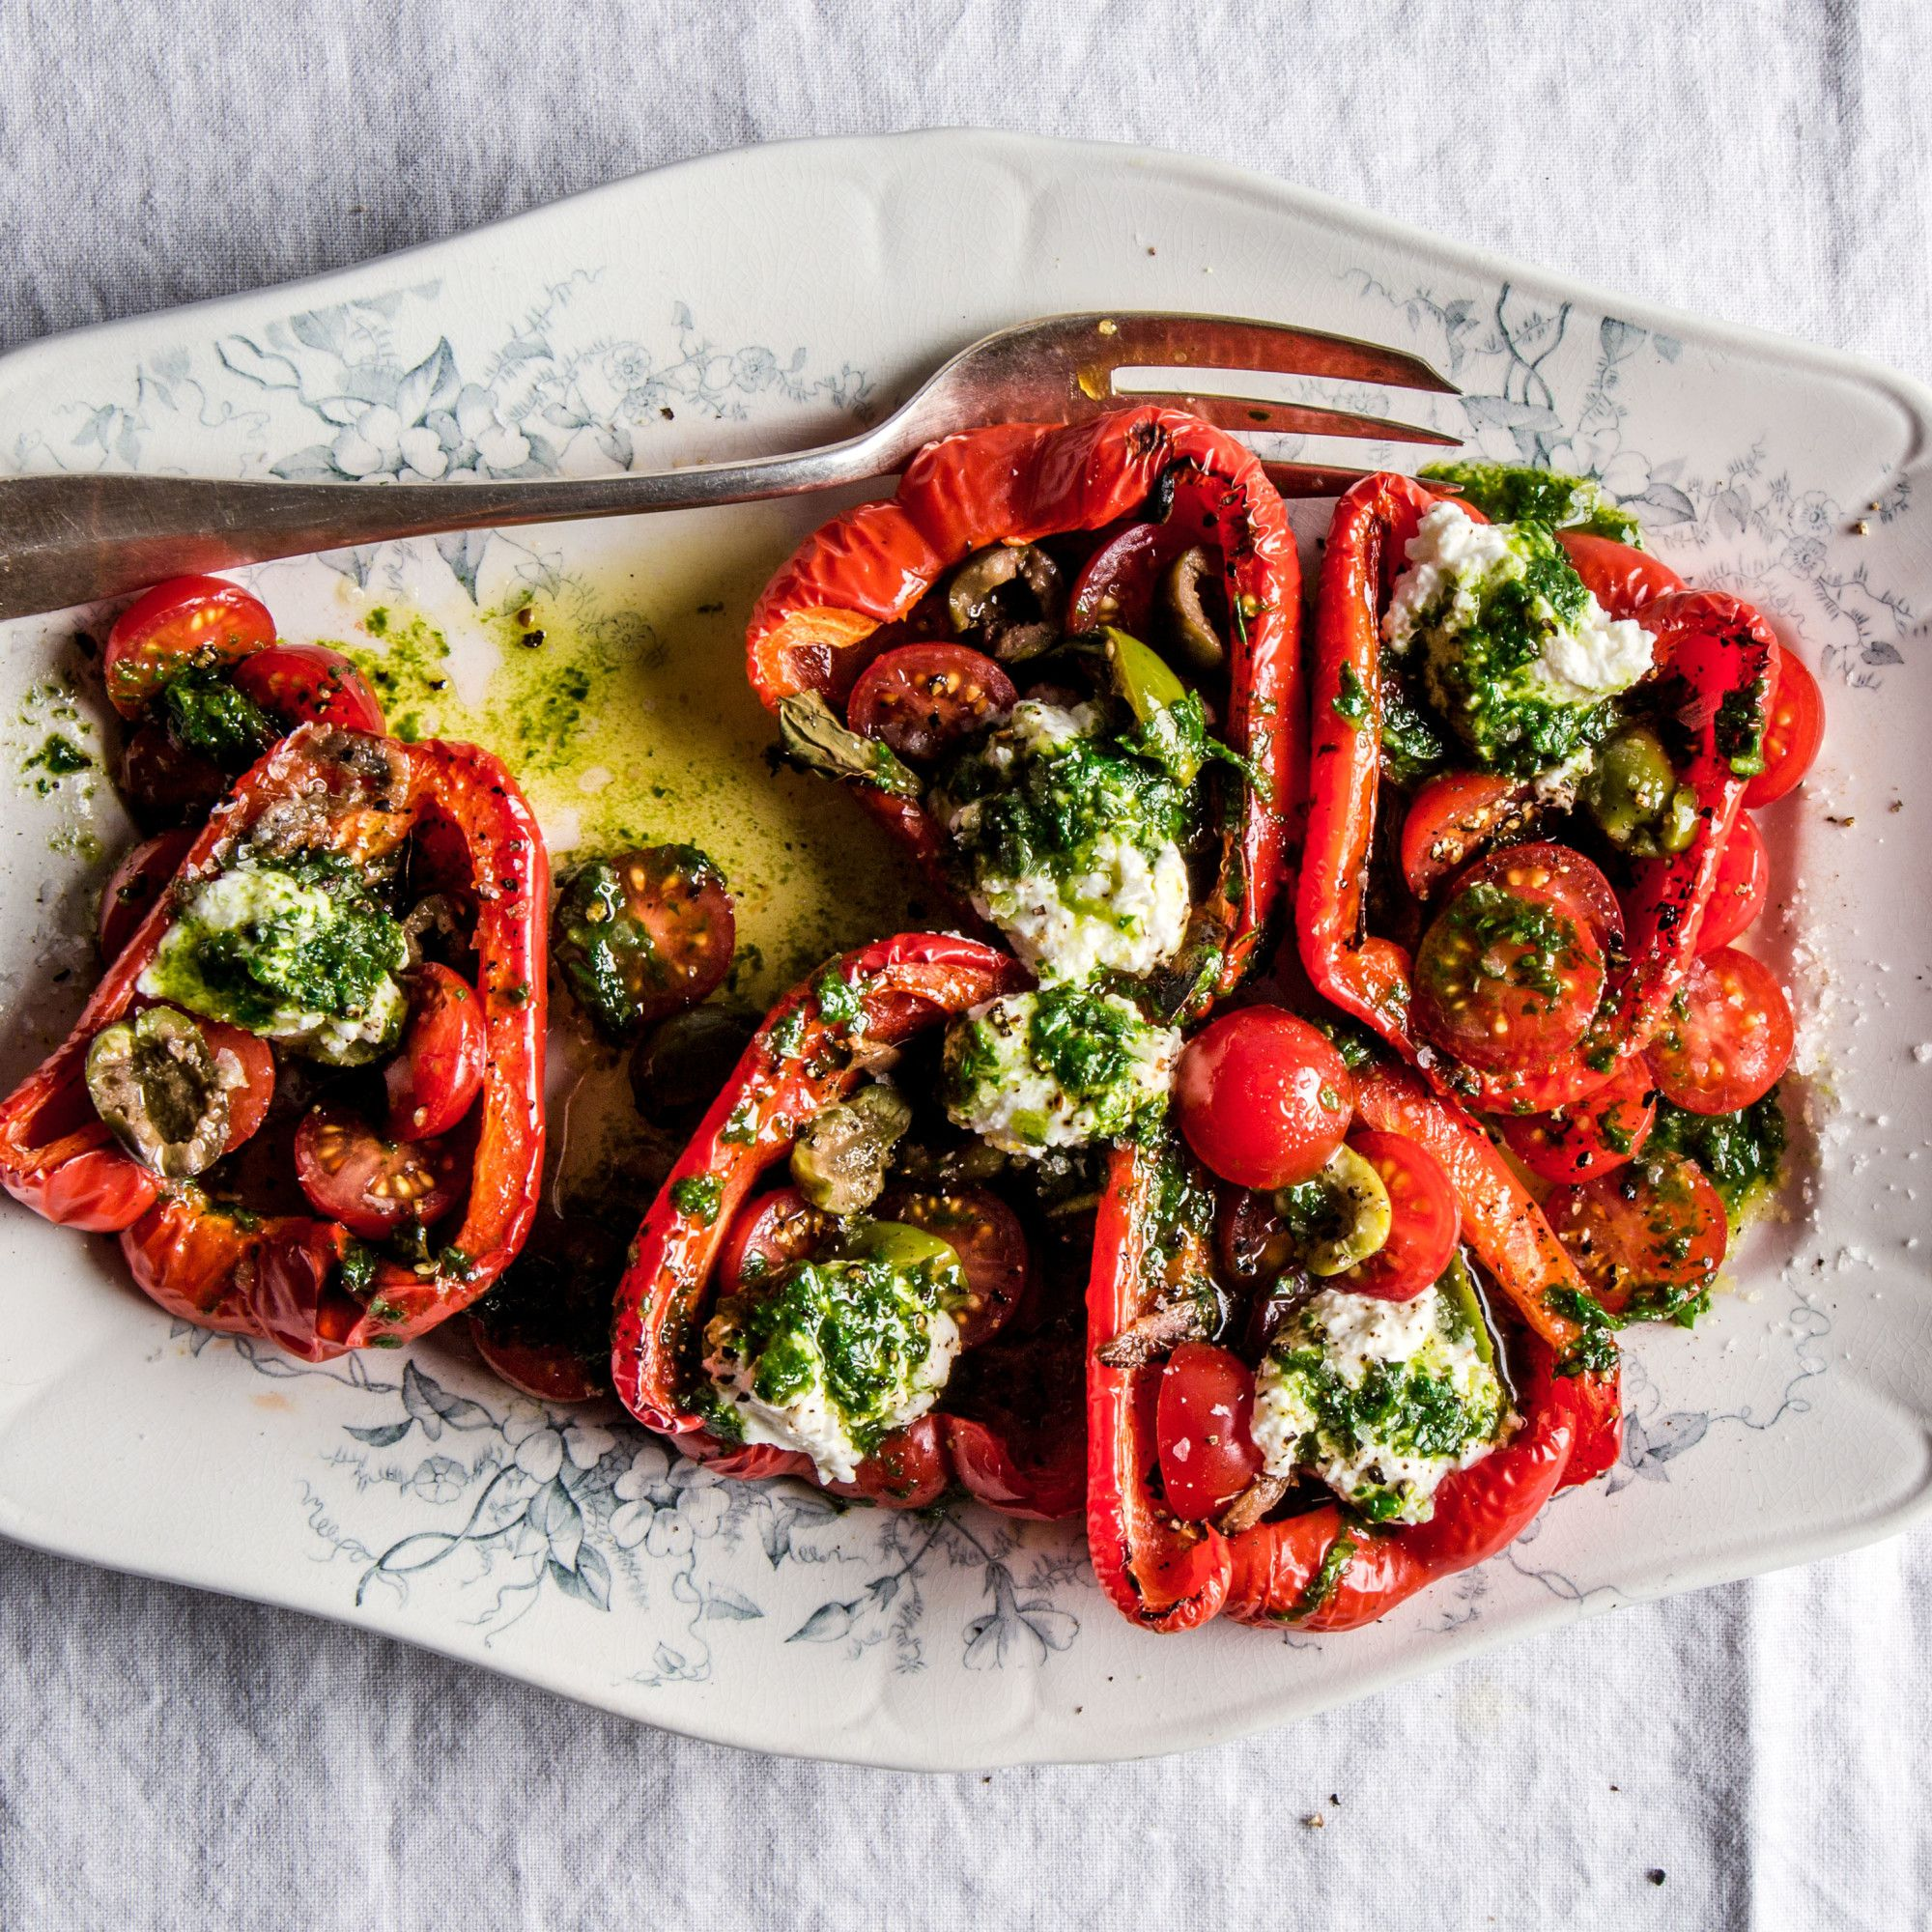 Roasted Red Peppers And Cherry Tomatoes With Ricotta Recipe Recipe Stuffed Peppers Roasted Red Peppers Recipes Hot Pepper Recipes